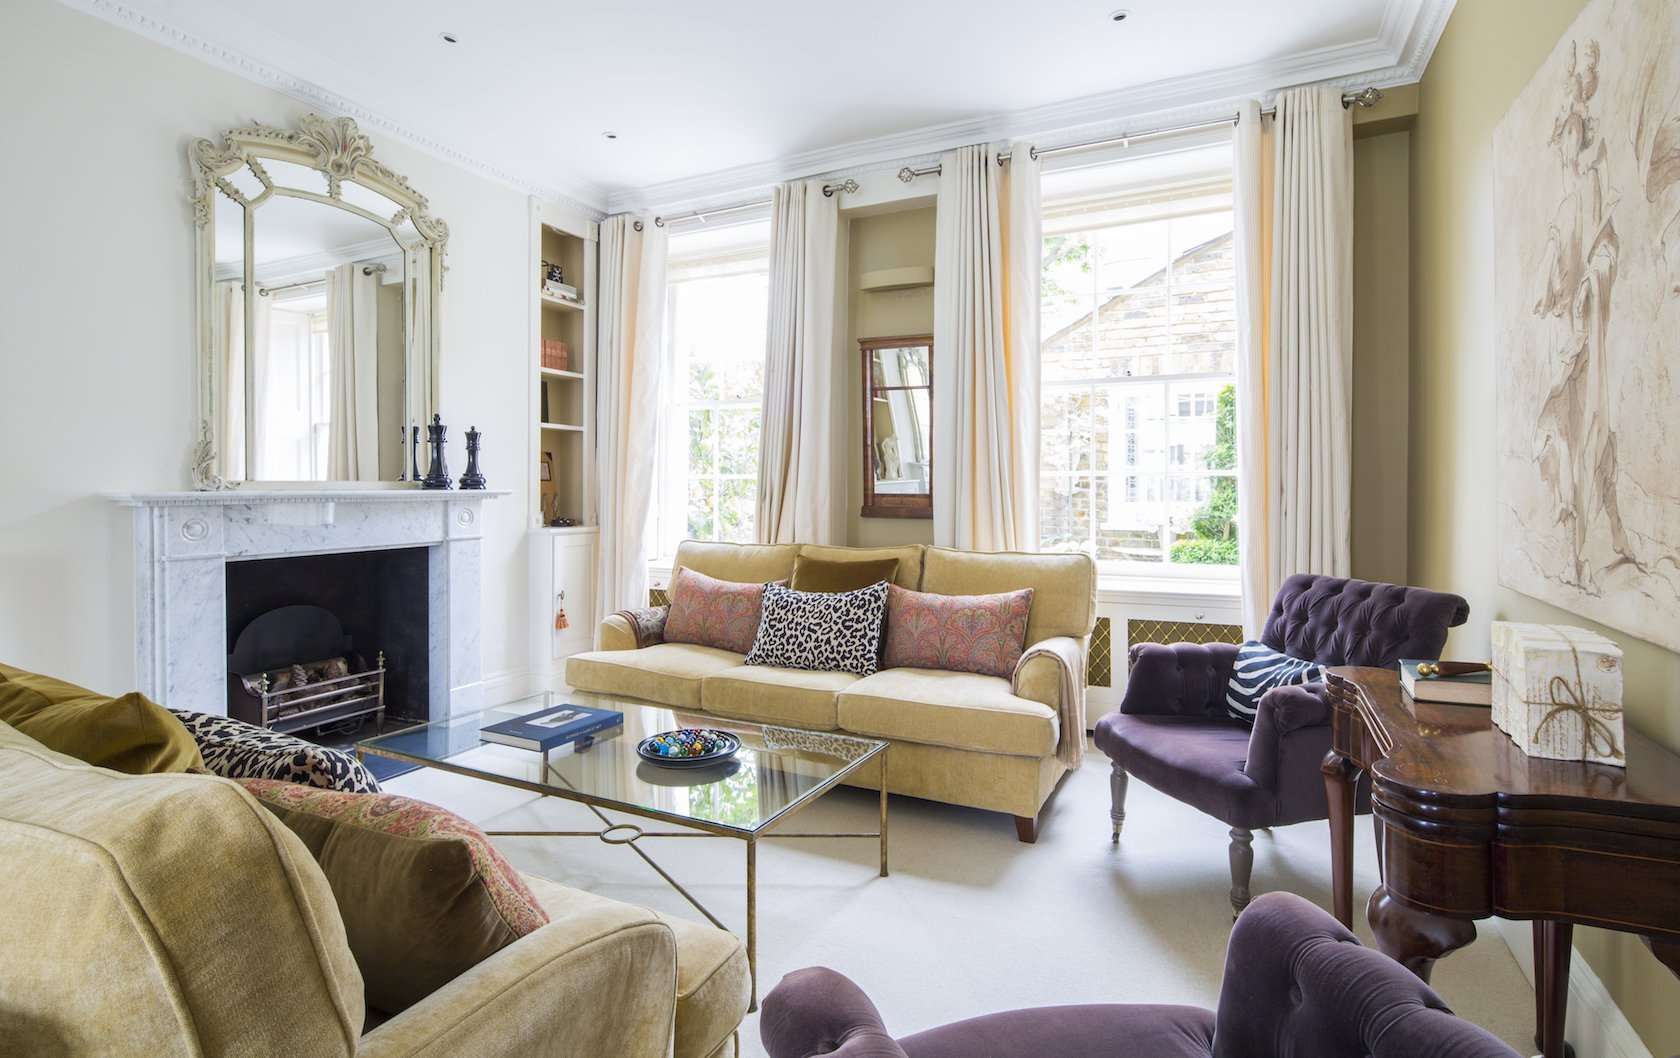 London apartments with fireplaces by London Perfect